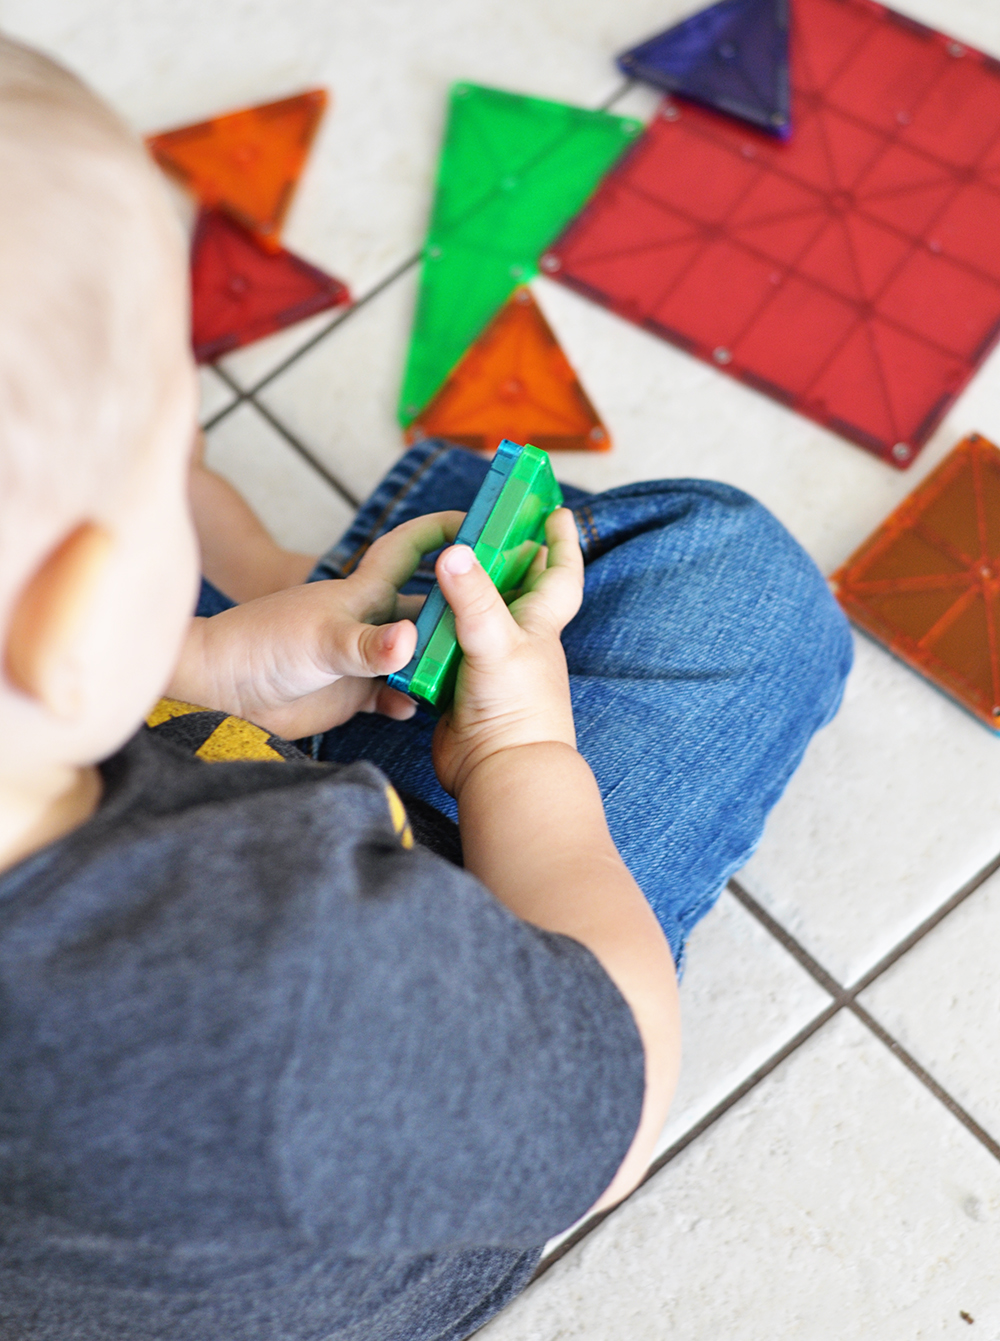 10 ways to encourage STEM learning at home